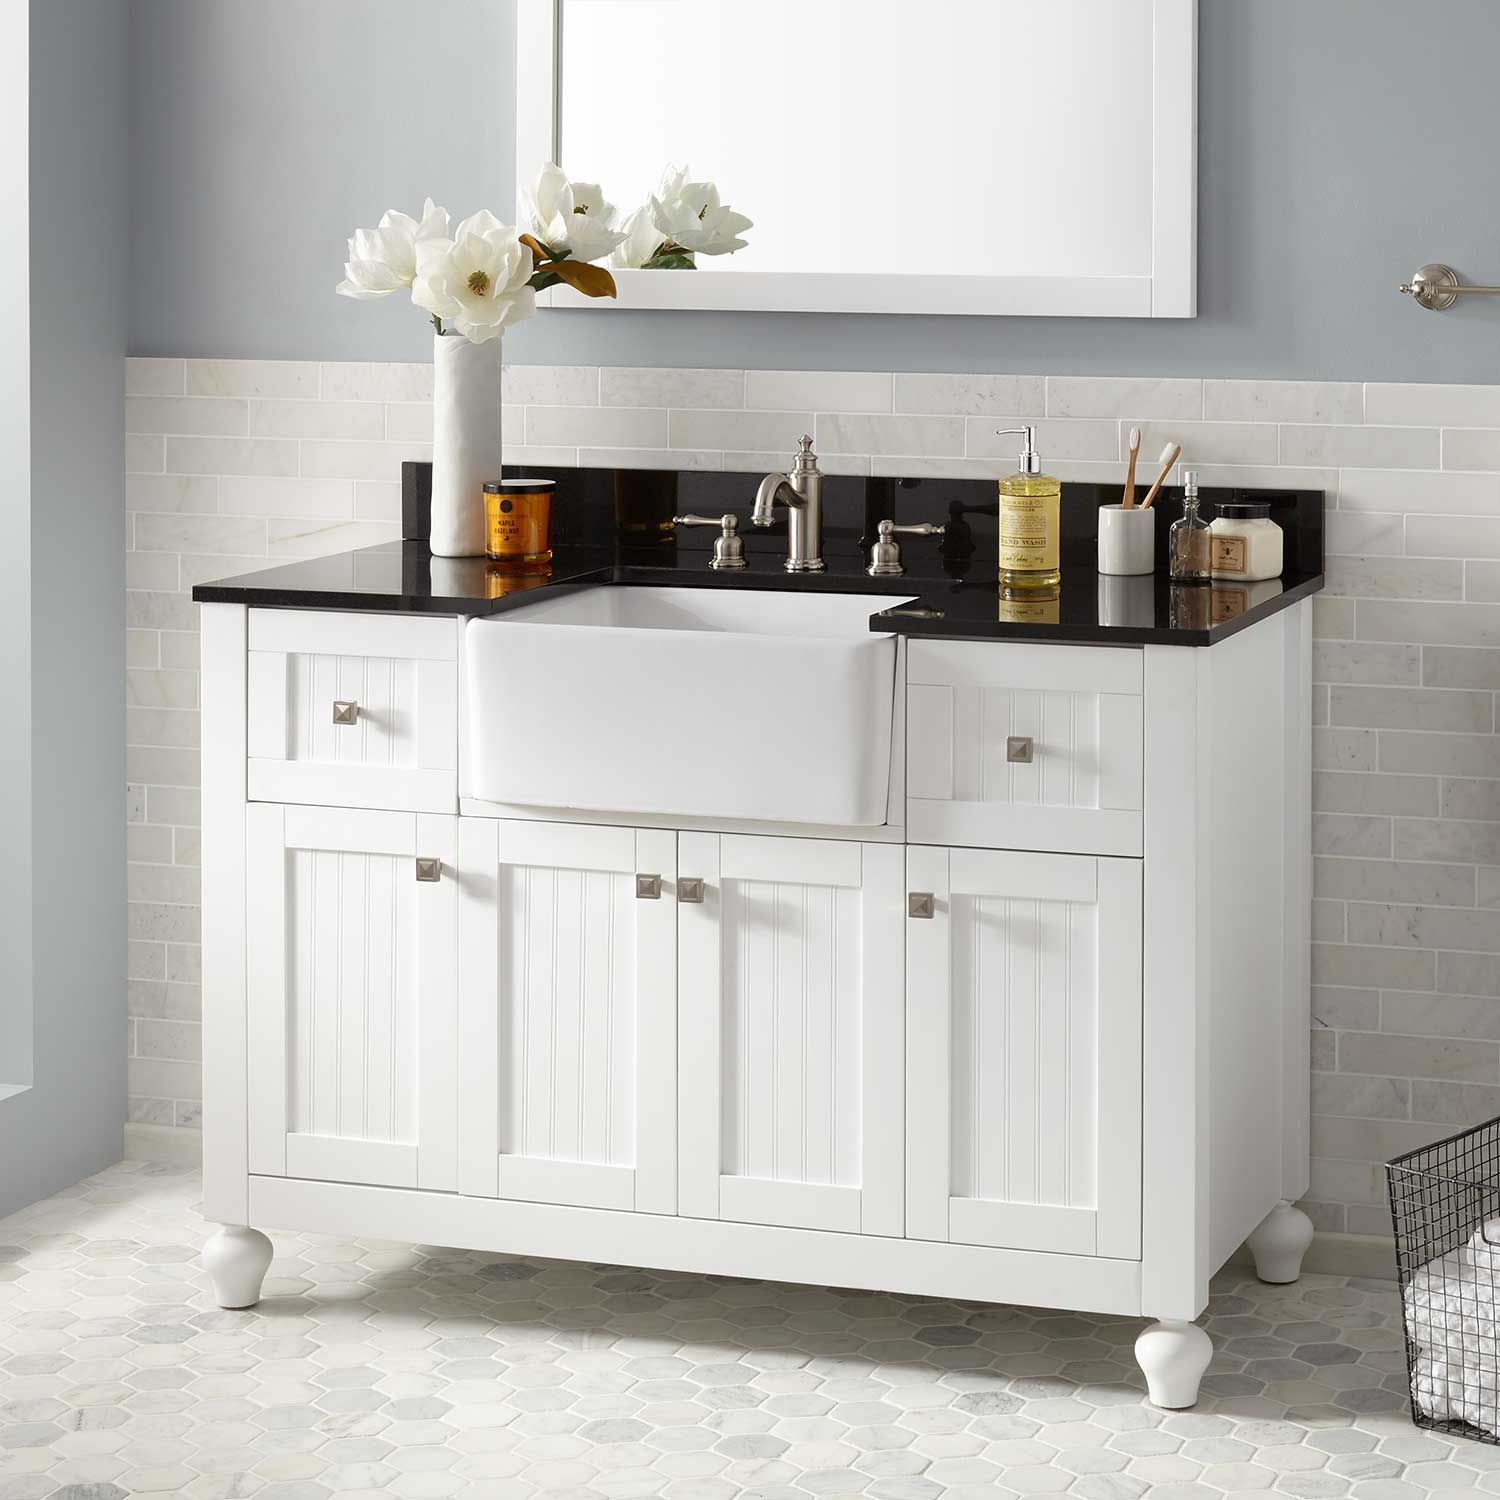 30 Nellie Farmhouse Sink Vanity White Bathroom Vanities Bathroom Farmhouse Sink Vanity Farmhouse Bathroom Sink Farmhouse Bathroom Vanity